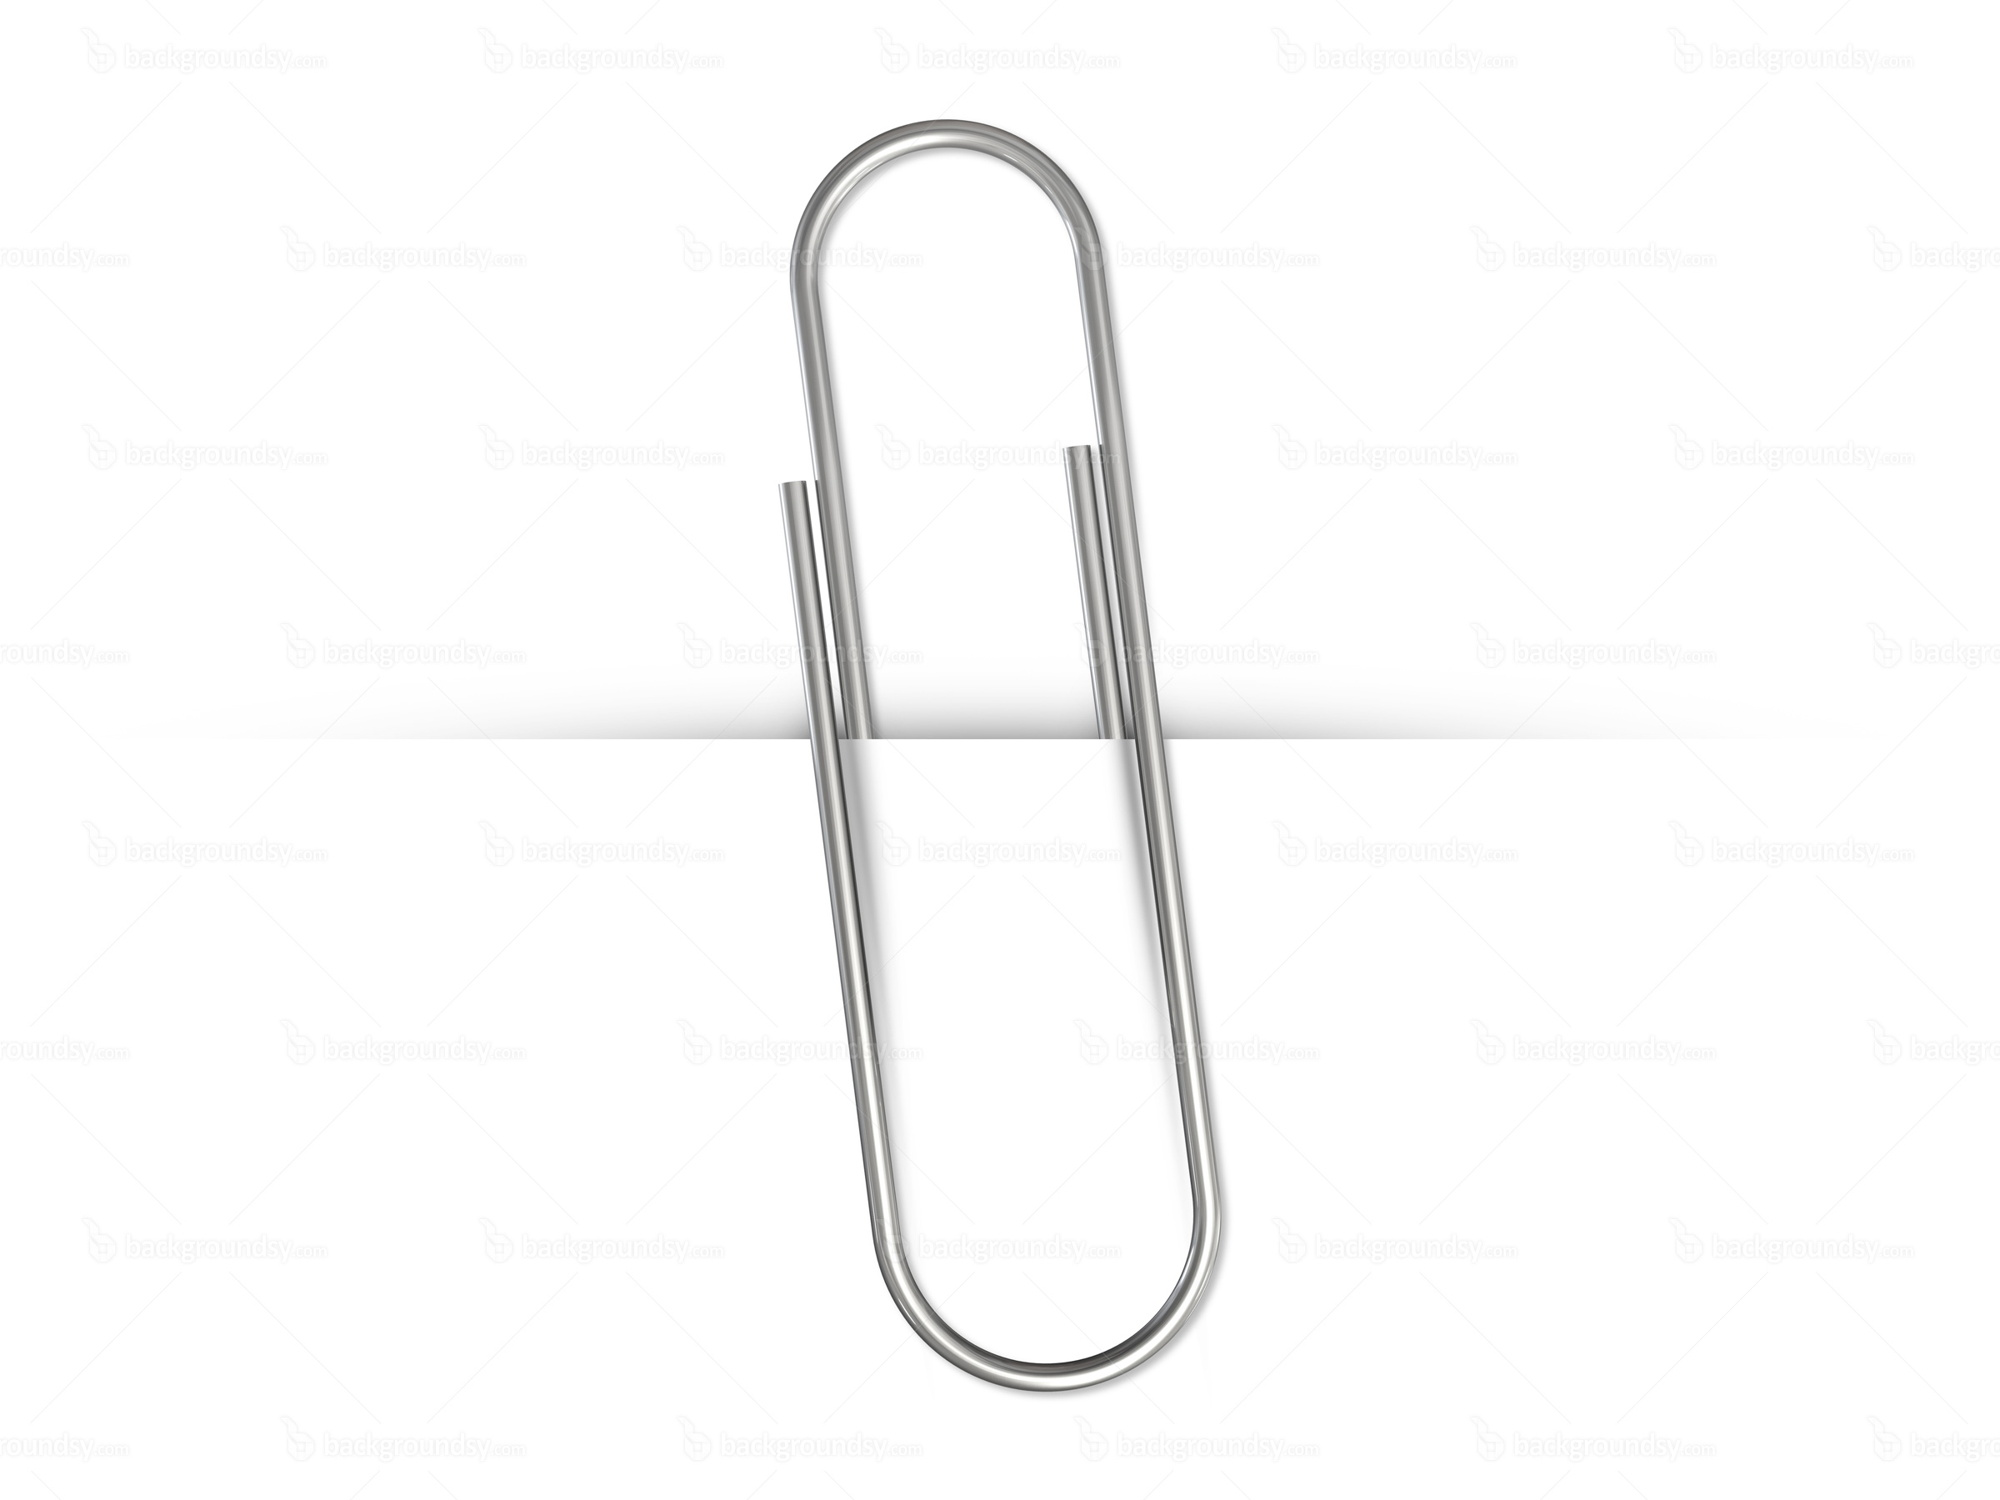 paperclip Paperclip definition, definition of paperclip, anagrams of paperclip, words that start with paperclip, and words that can be created from paperclip.